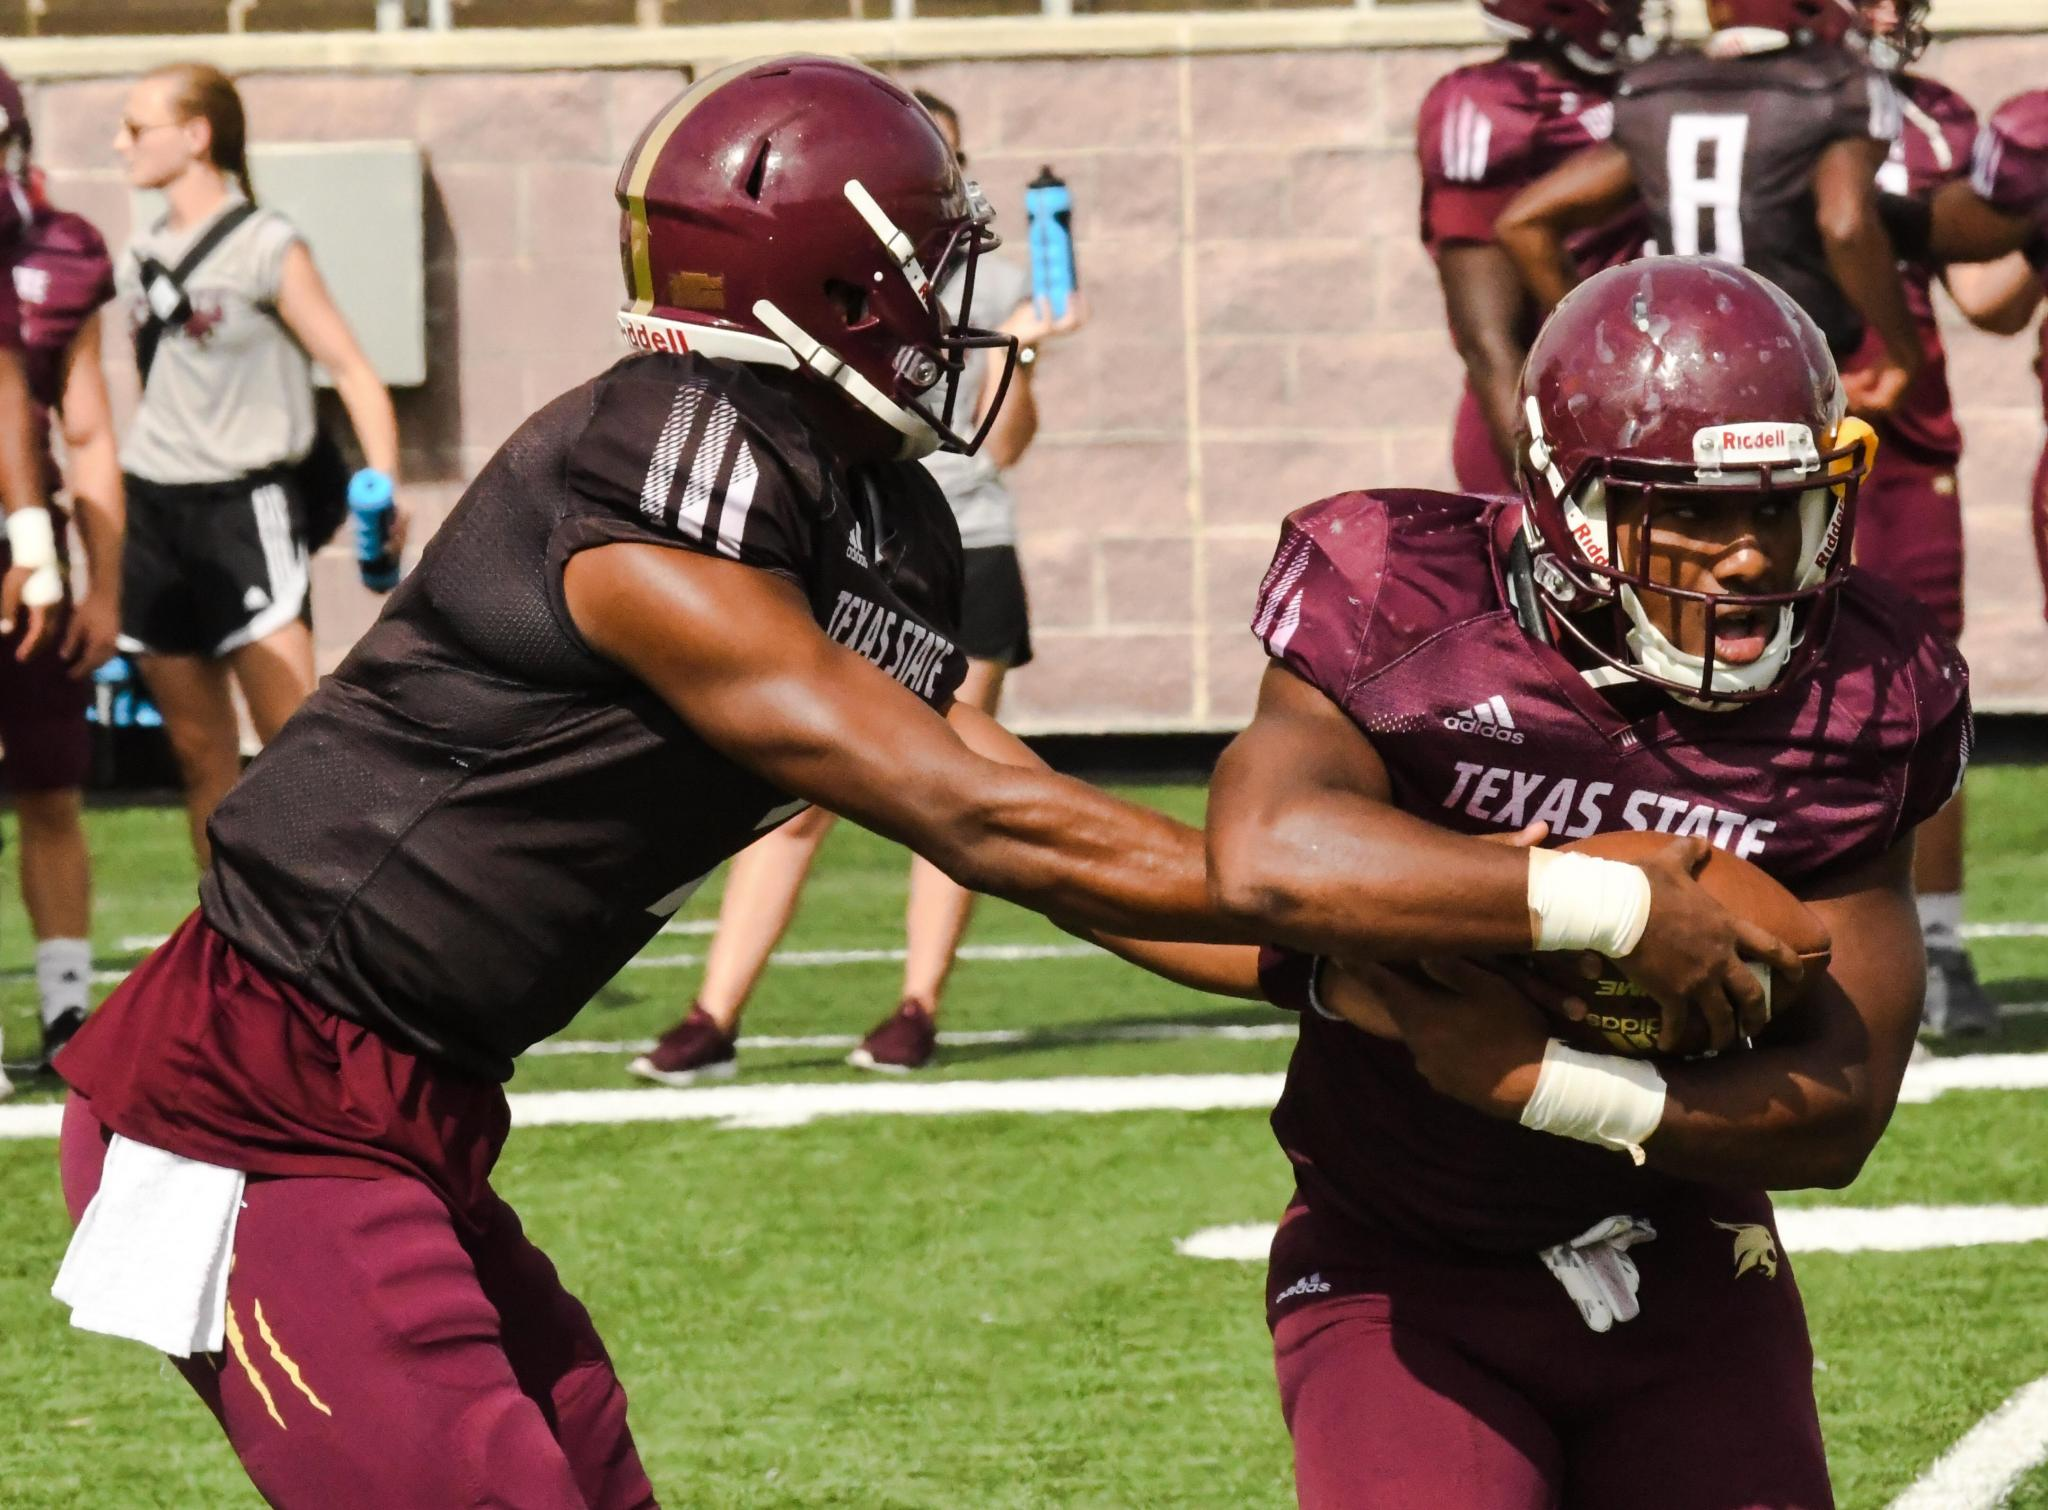 Redshirt freshman quarterback Jaylen Gipson hands off the ball during Texas State's scrimmage on Saturday